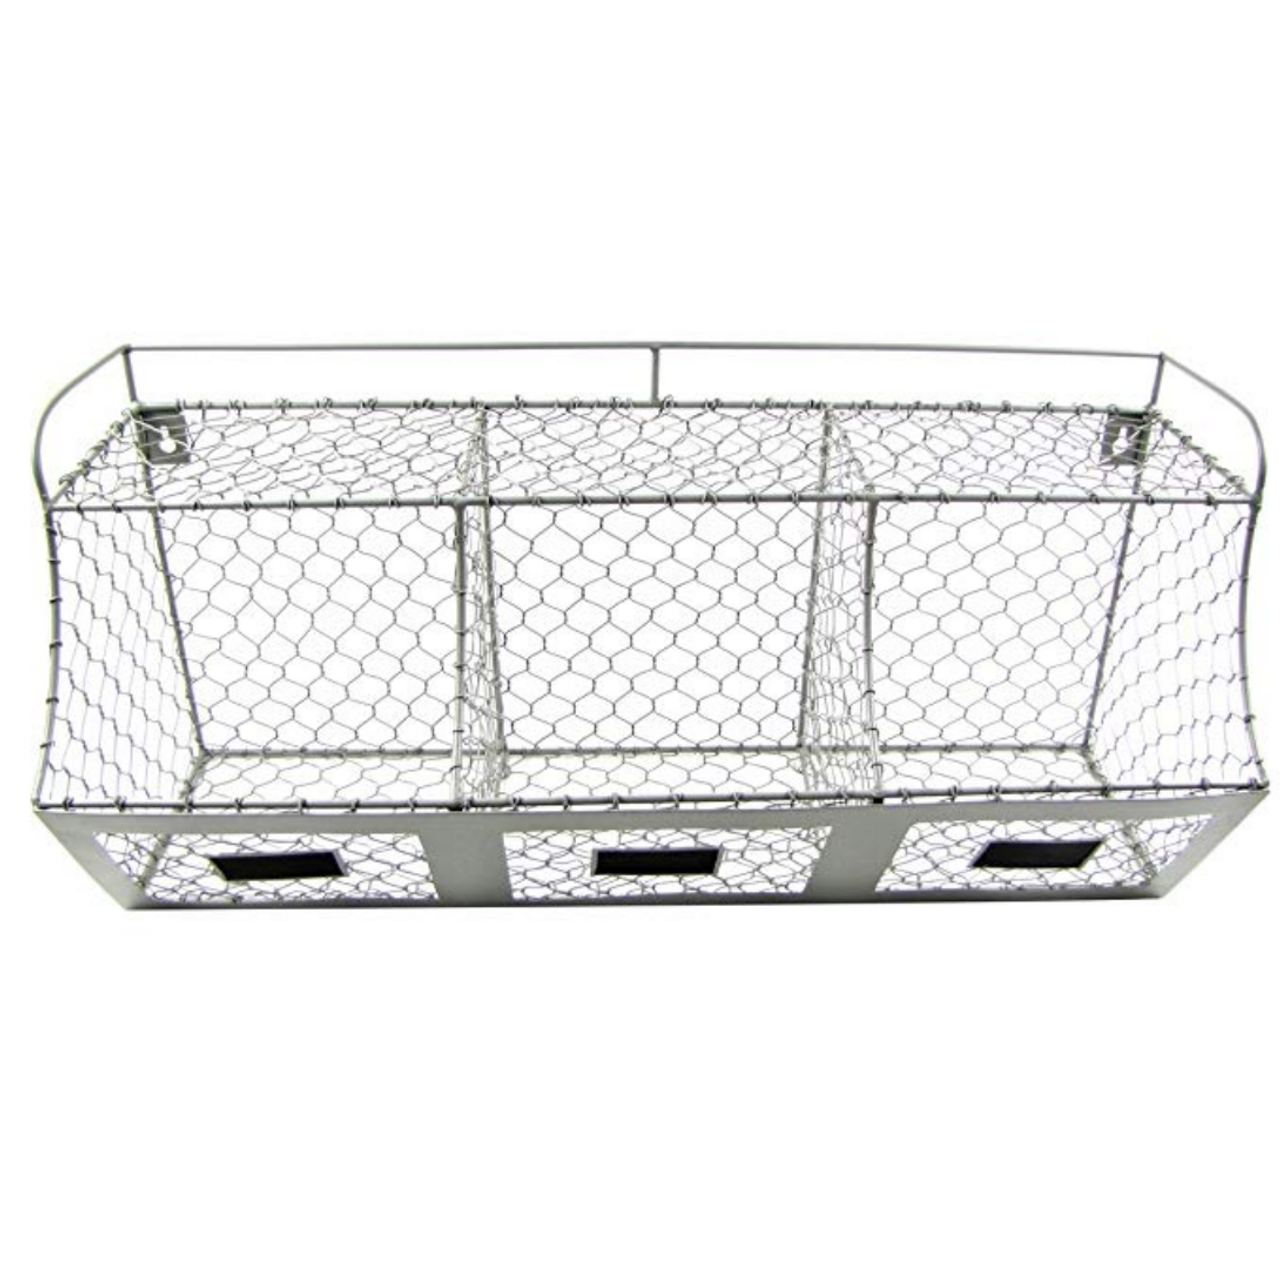 Rustic Farmhouse Chicken Wire Multi Bin